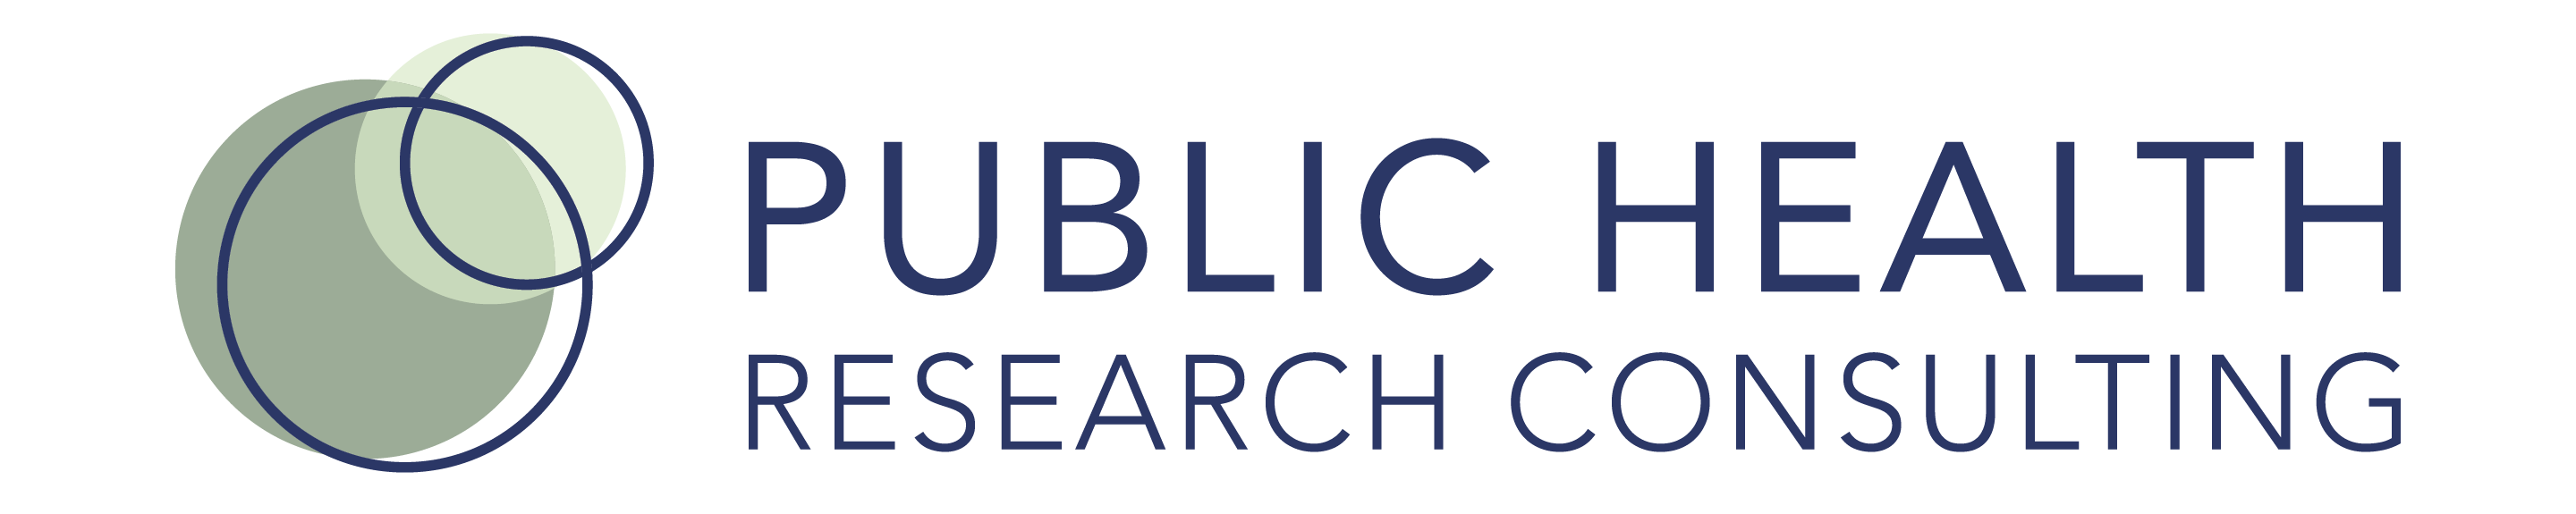 Public Health Research Consulting